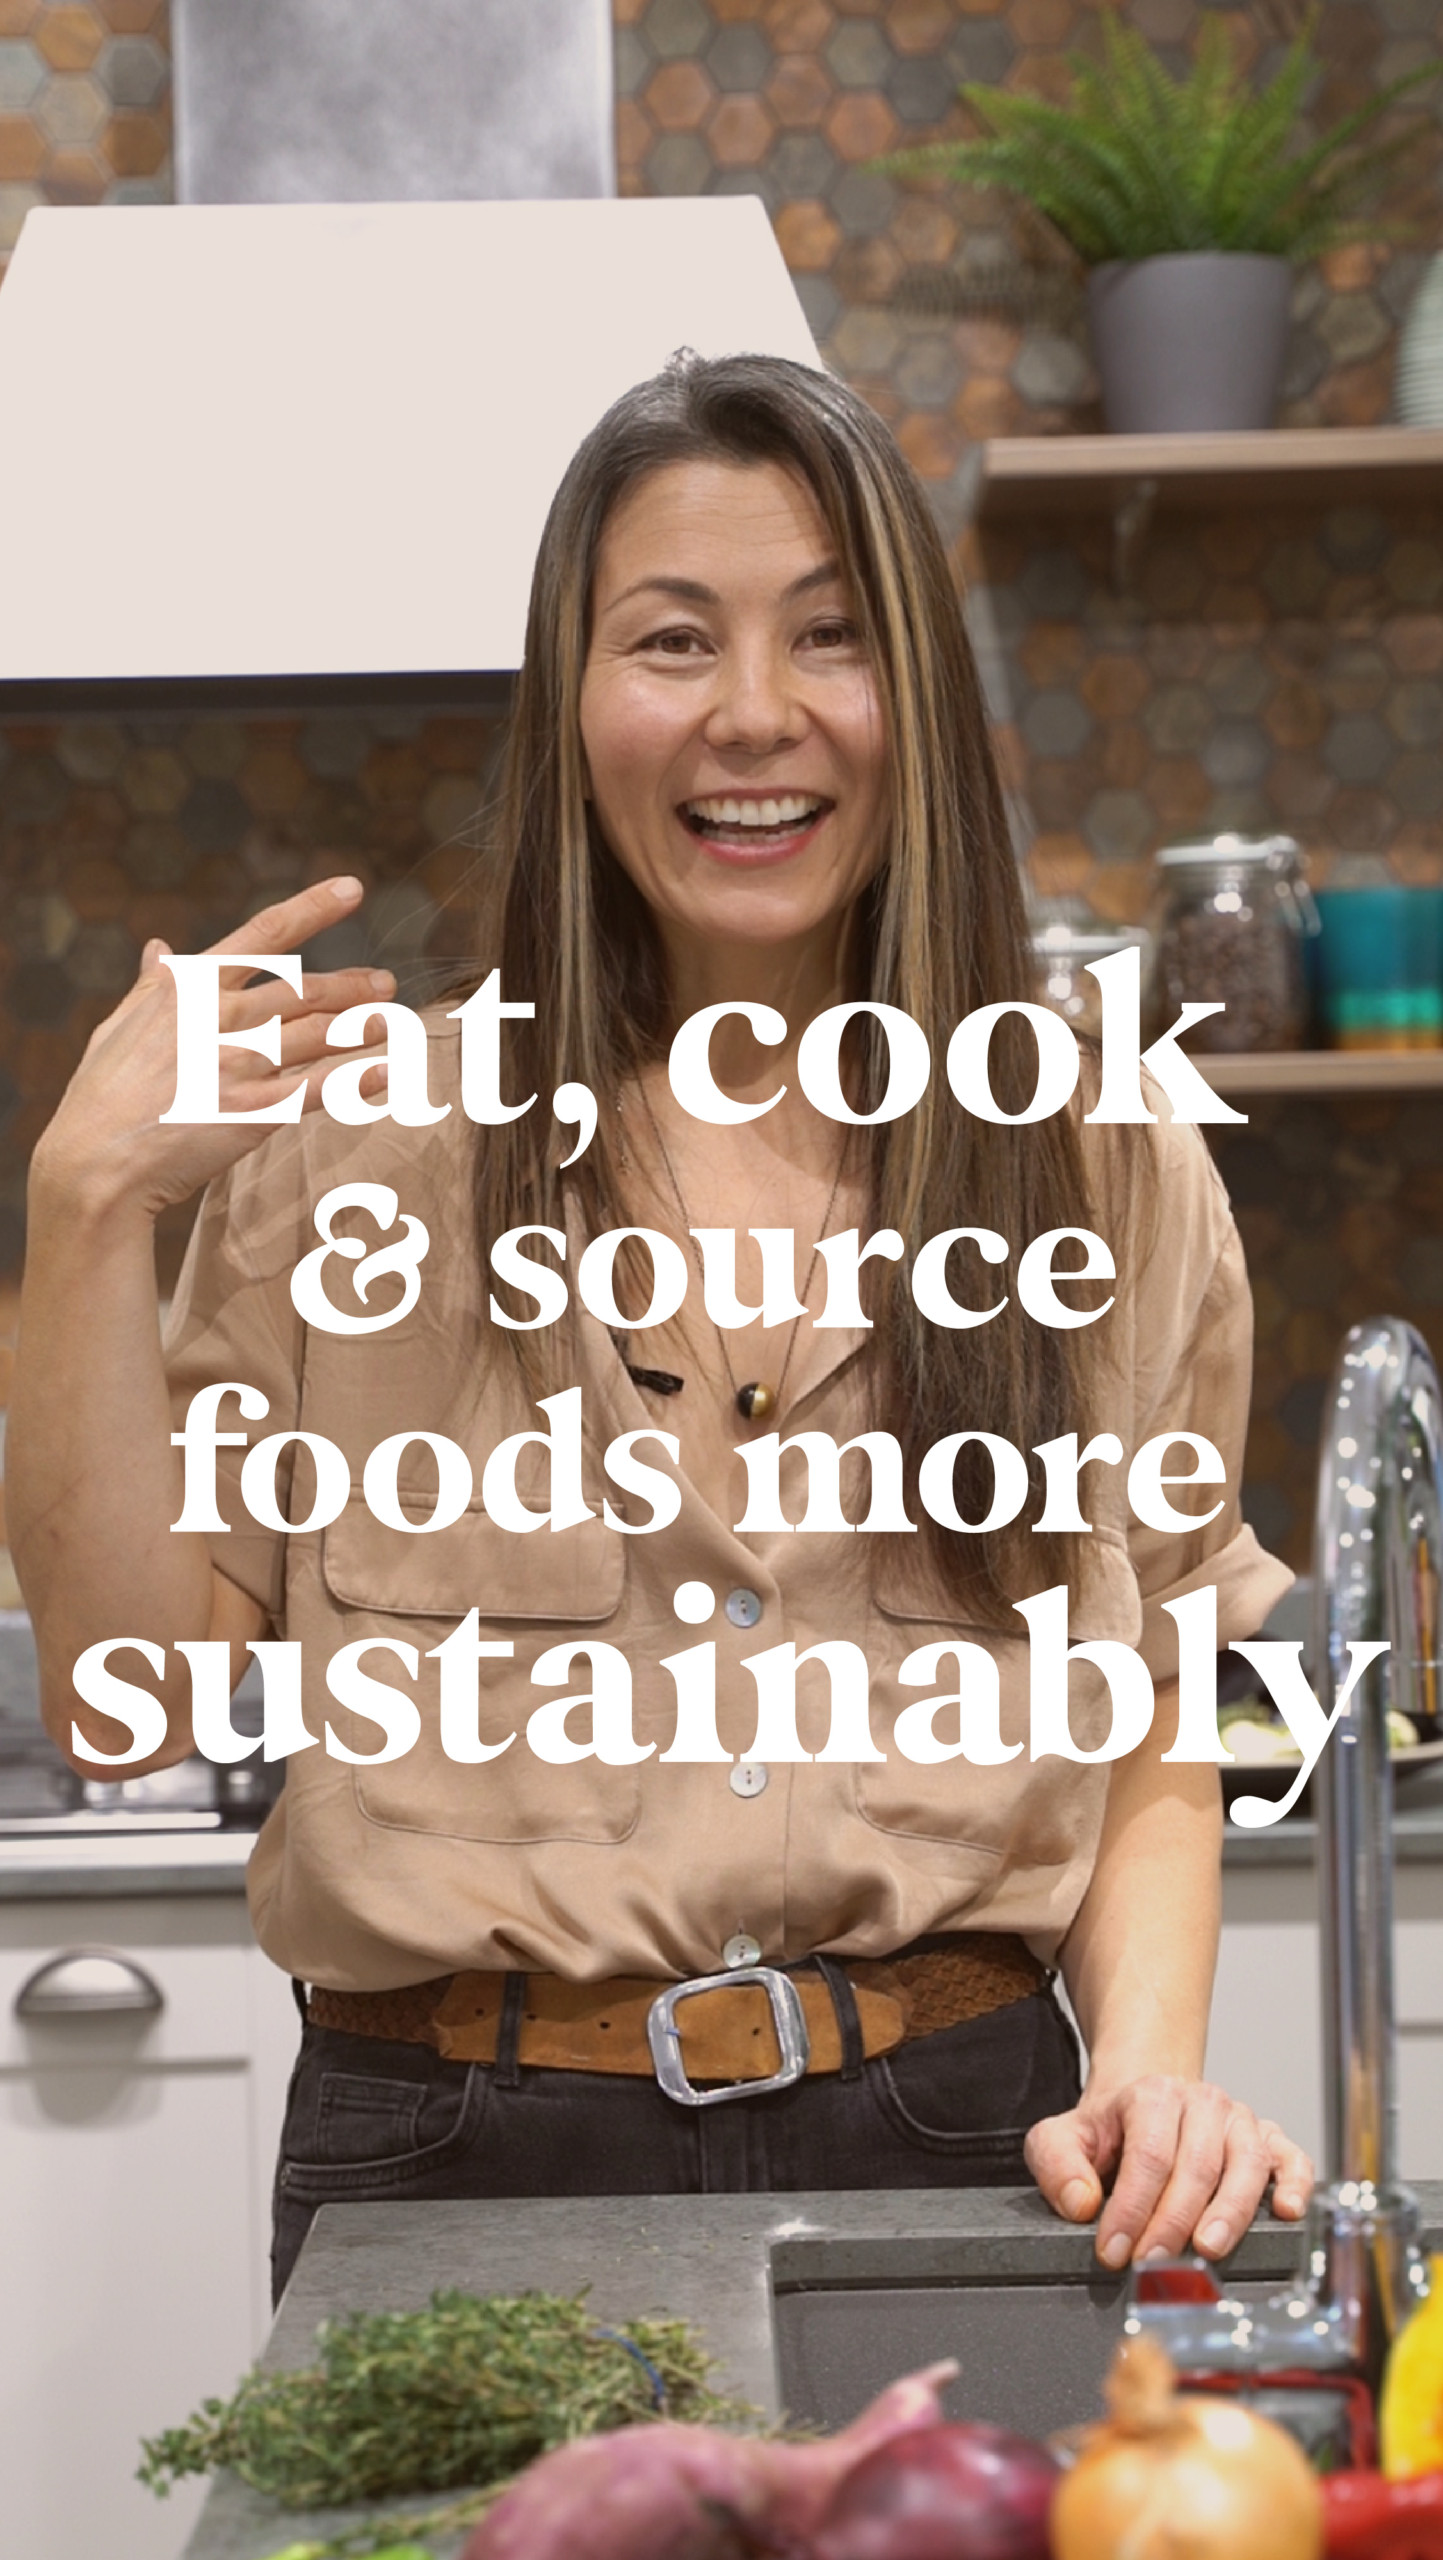 Top Tips for Cooking and Eating Sustainably in 2021